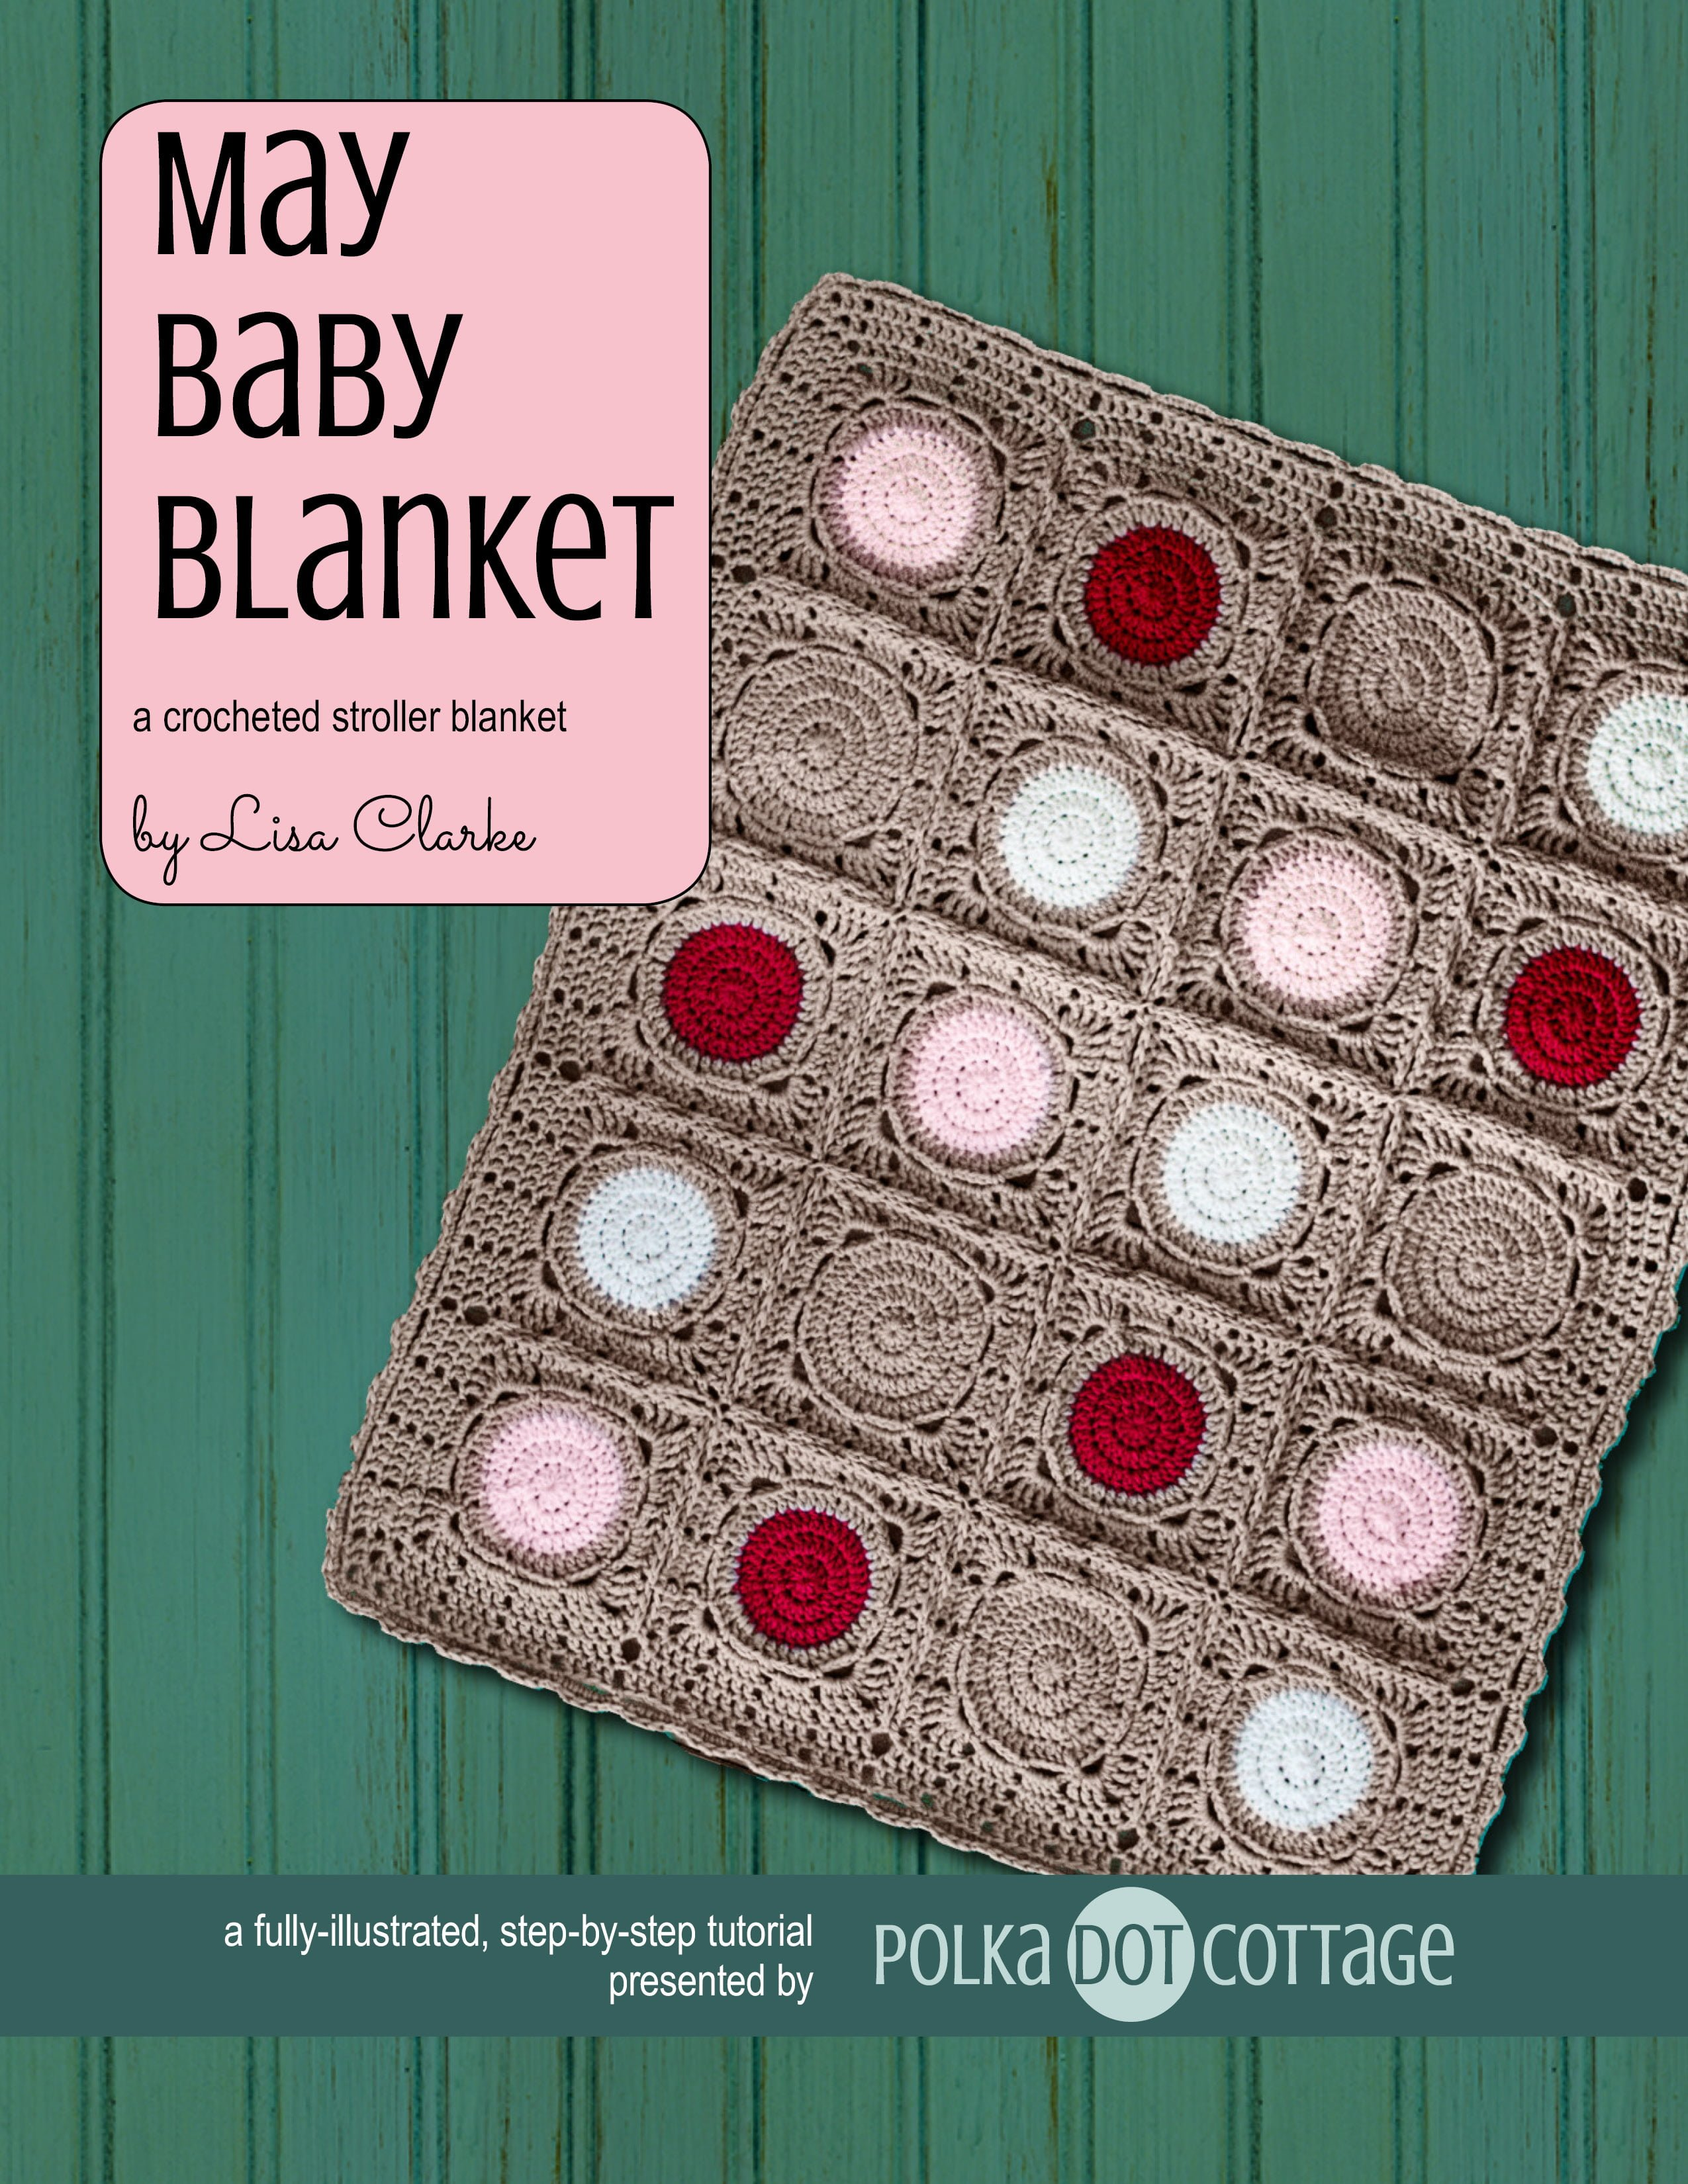 The May Baby Blanket crochet  pattern at Polka Dot Cottage